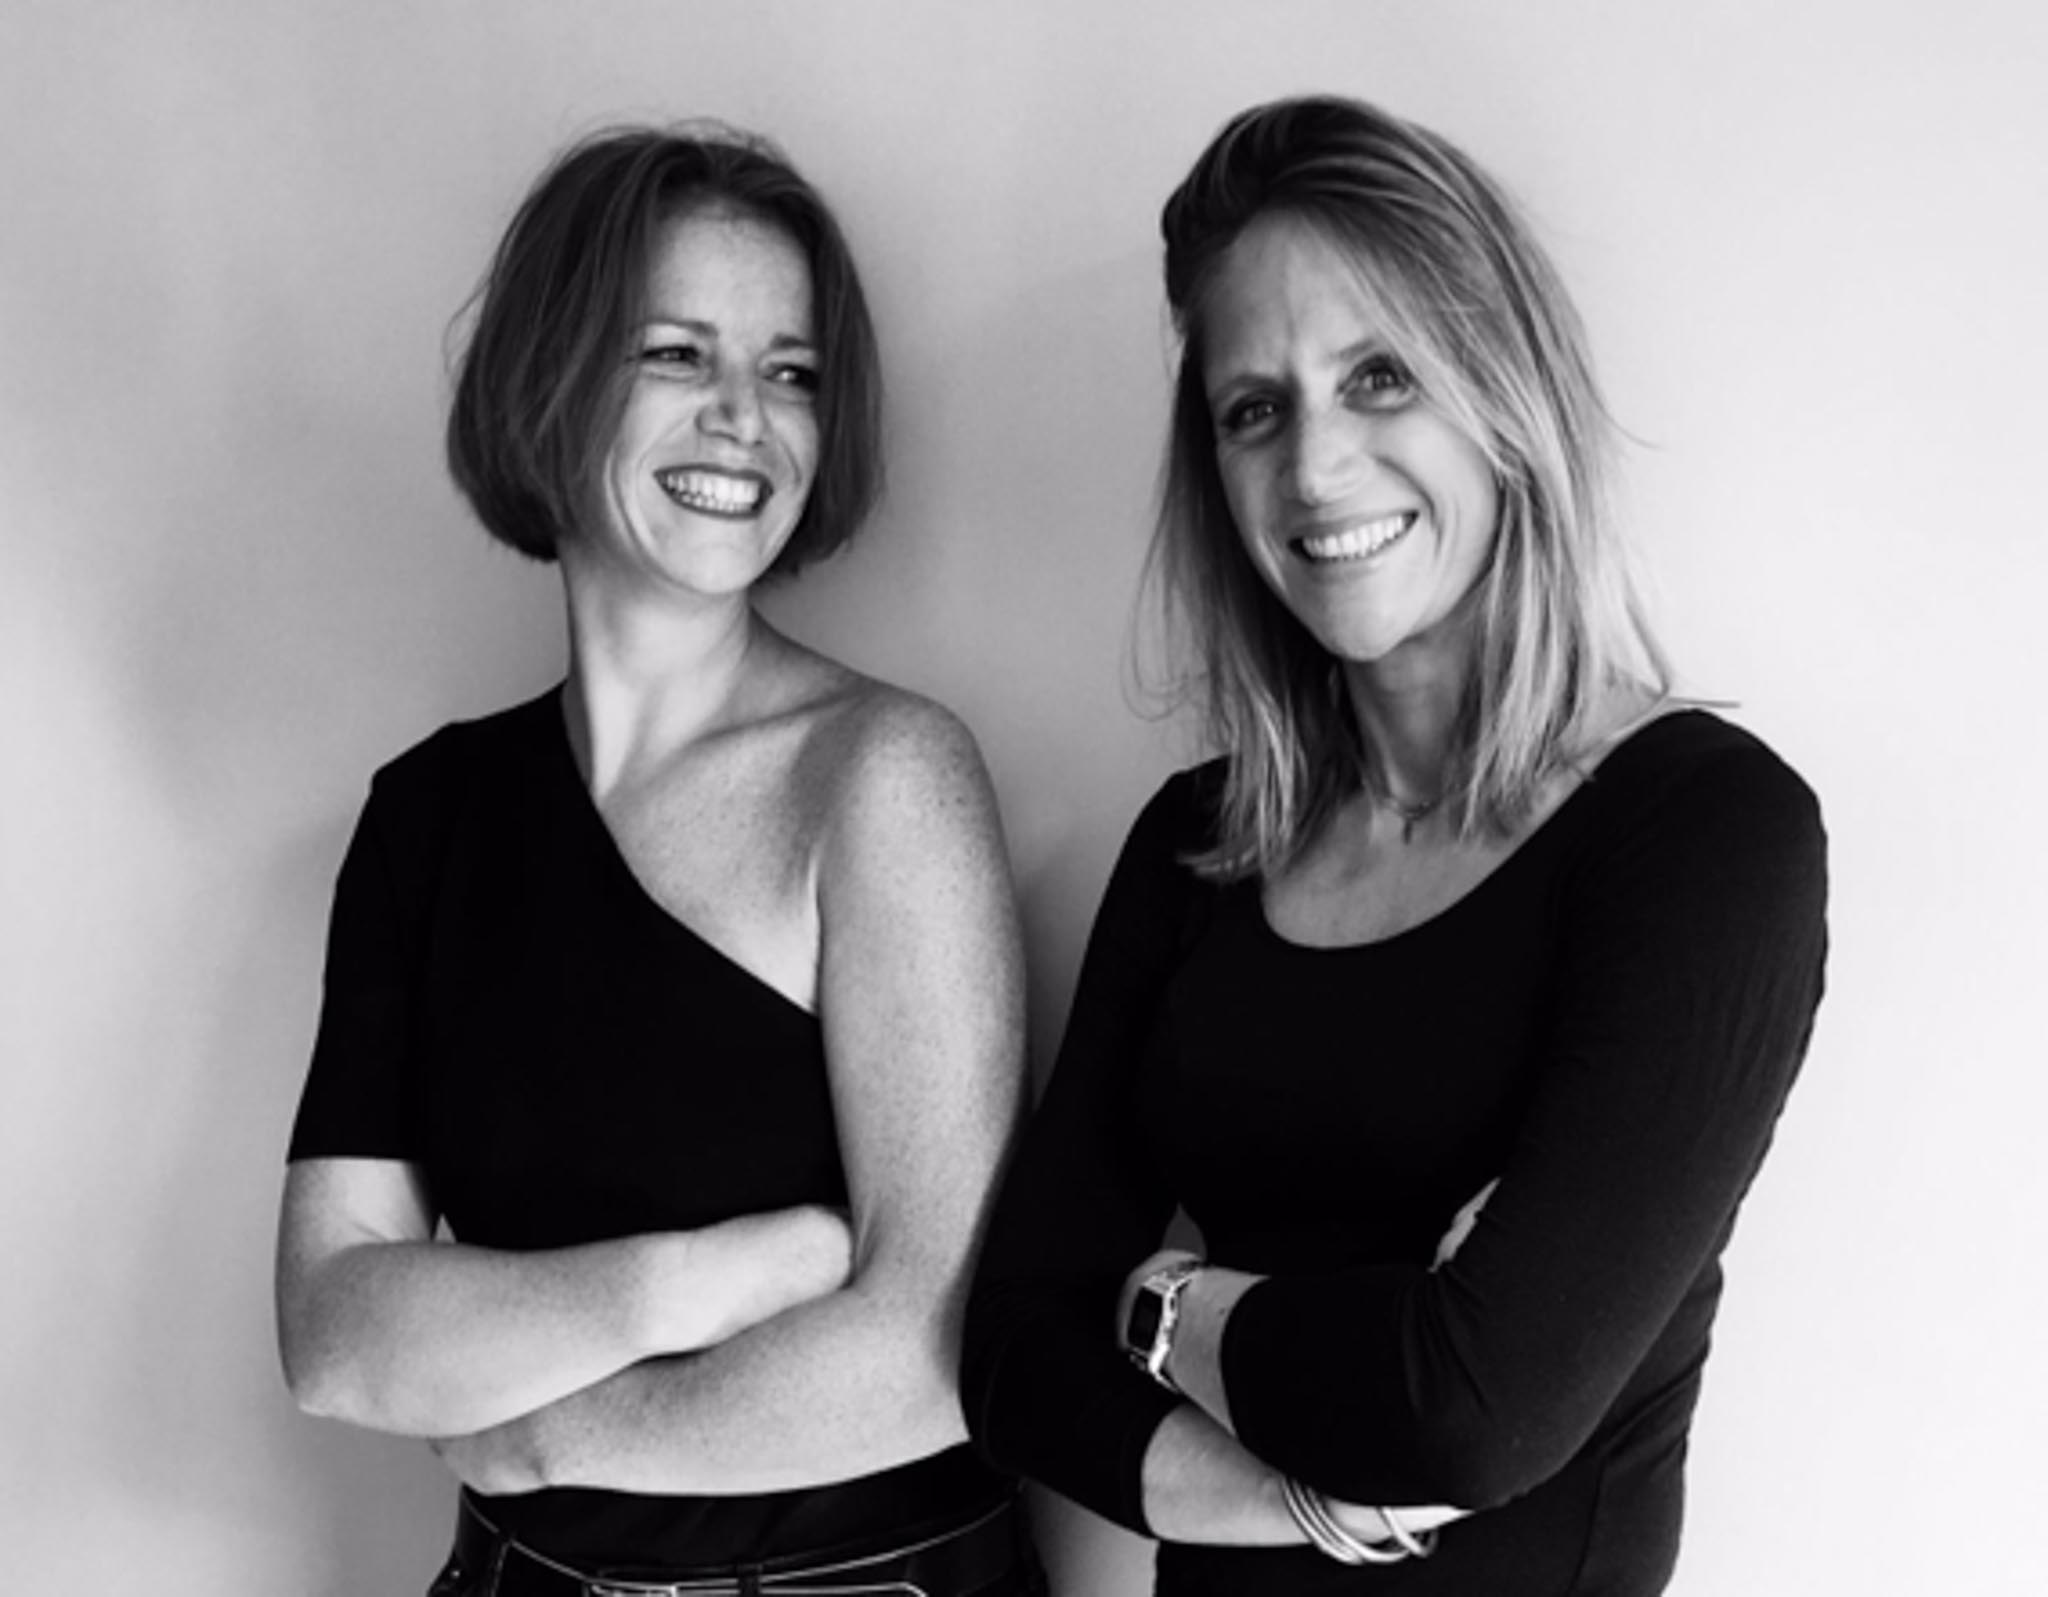 Amélie and Anne-Sophie founded Flair Studio in order to remain independent creative perfumers.